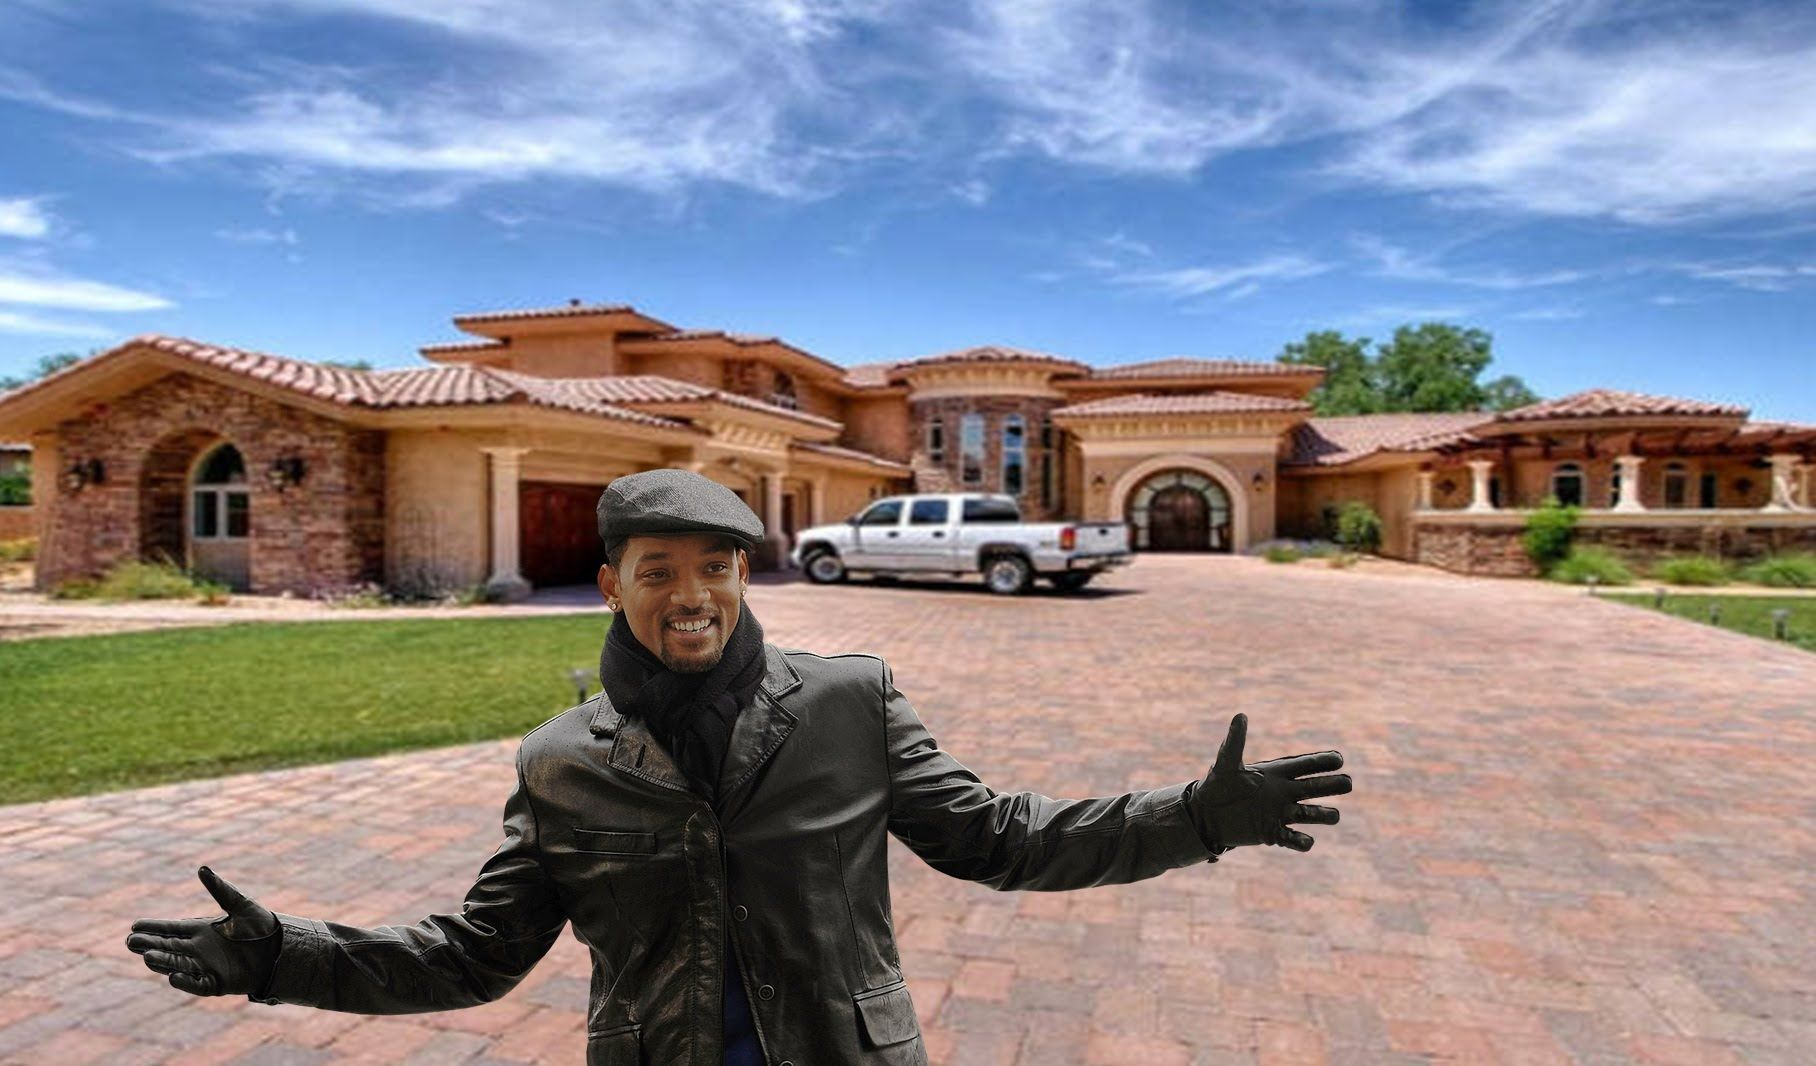 Will Smith S House 2015 Inside Outside Will Smith House Celebrity Houses Hollywood Homes